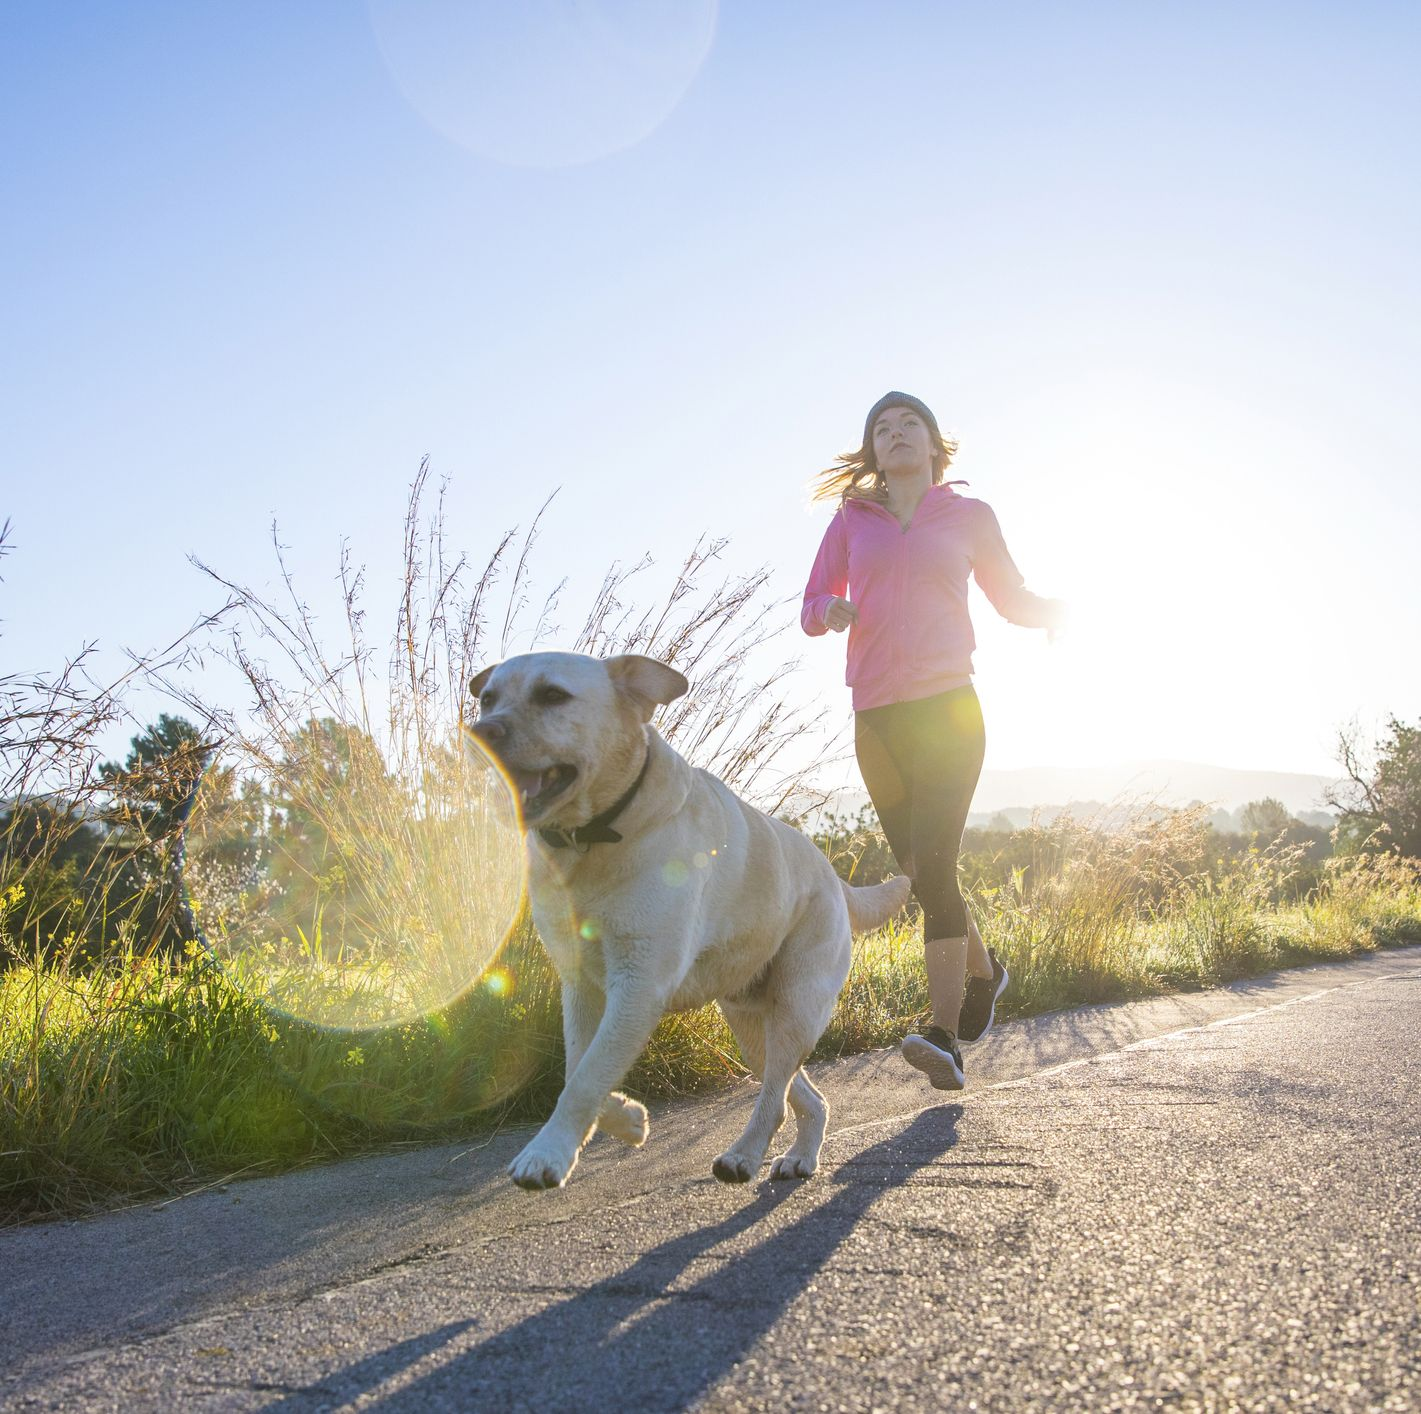 Young woman running along rural road with pet dog, low angle view